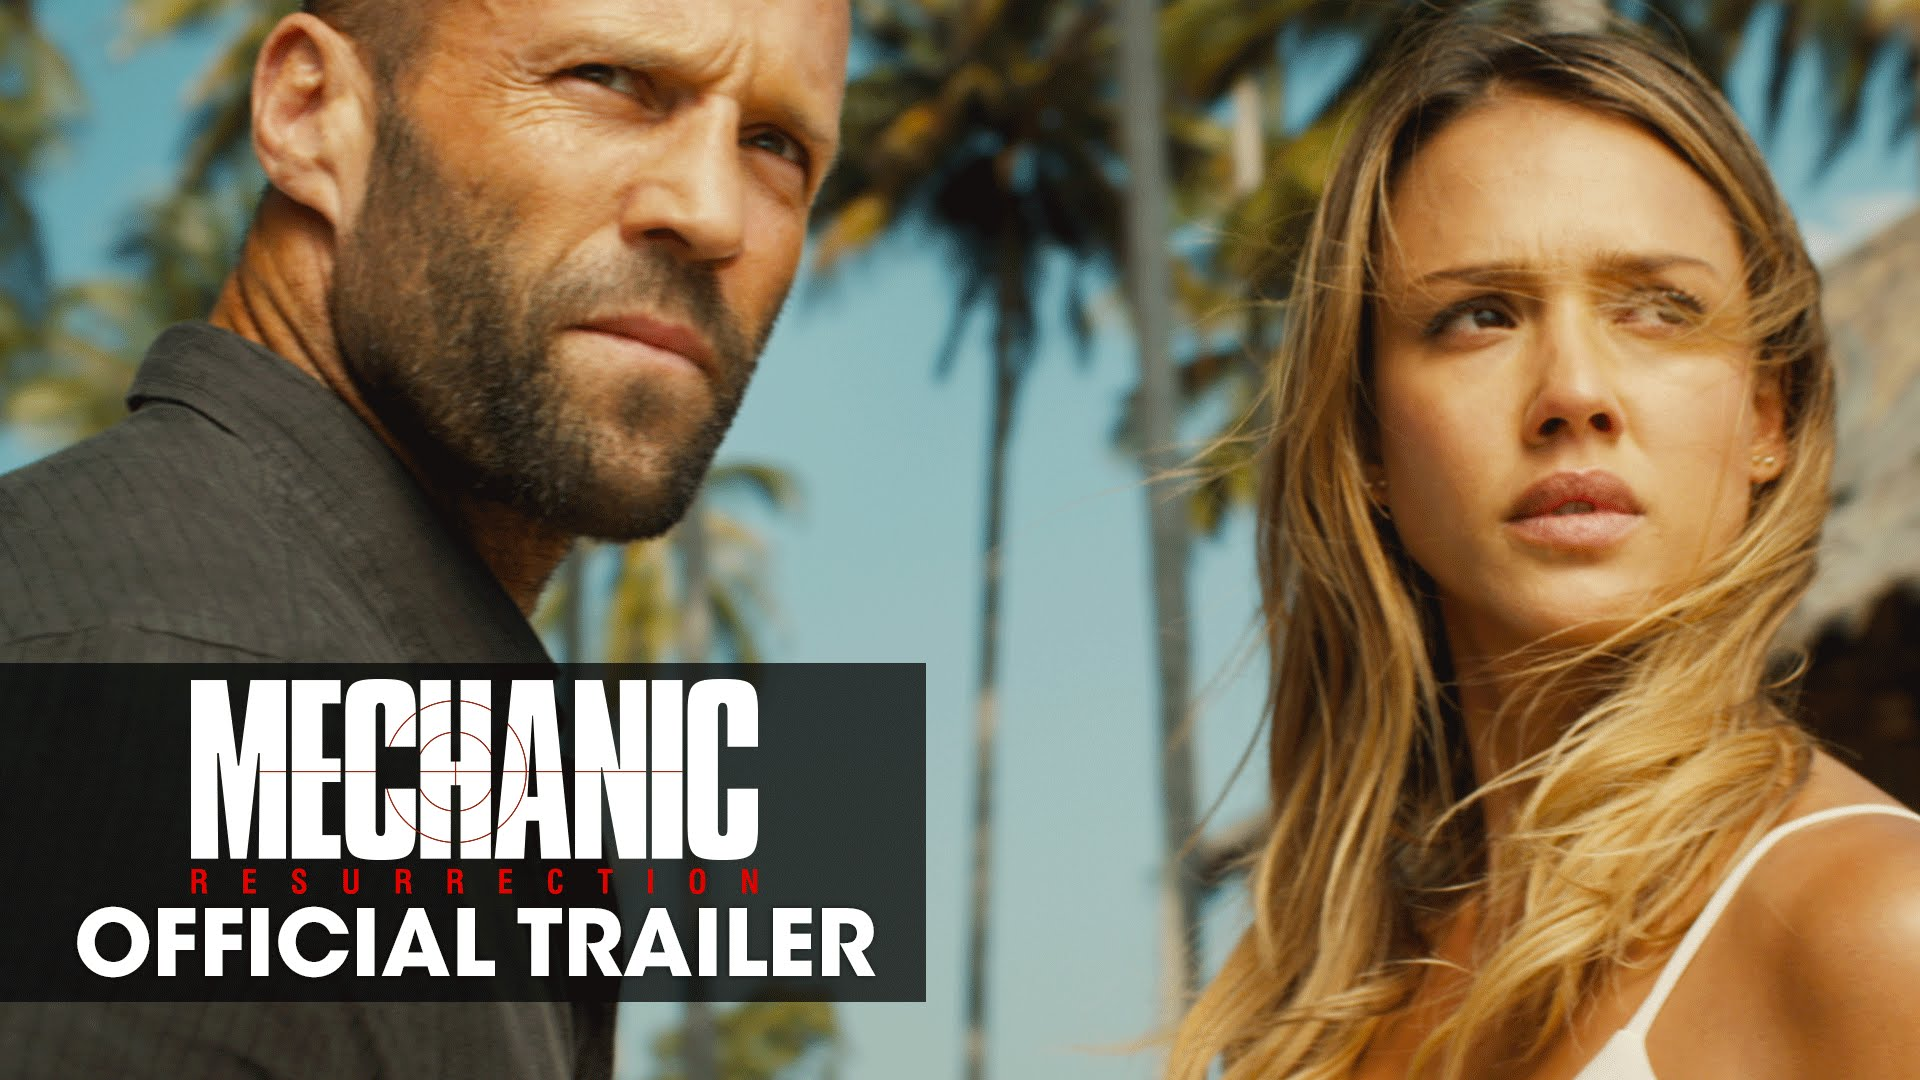 Mechanic: Resurrection – Official Trailer